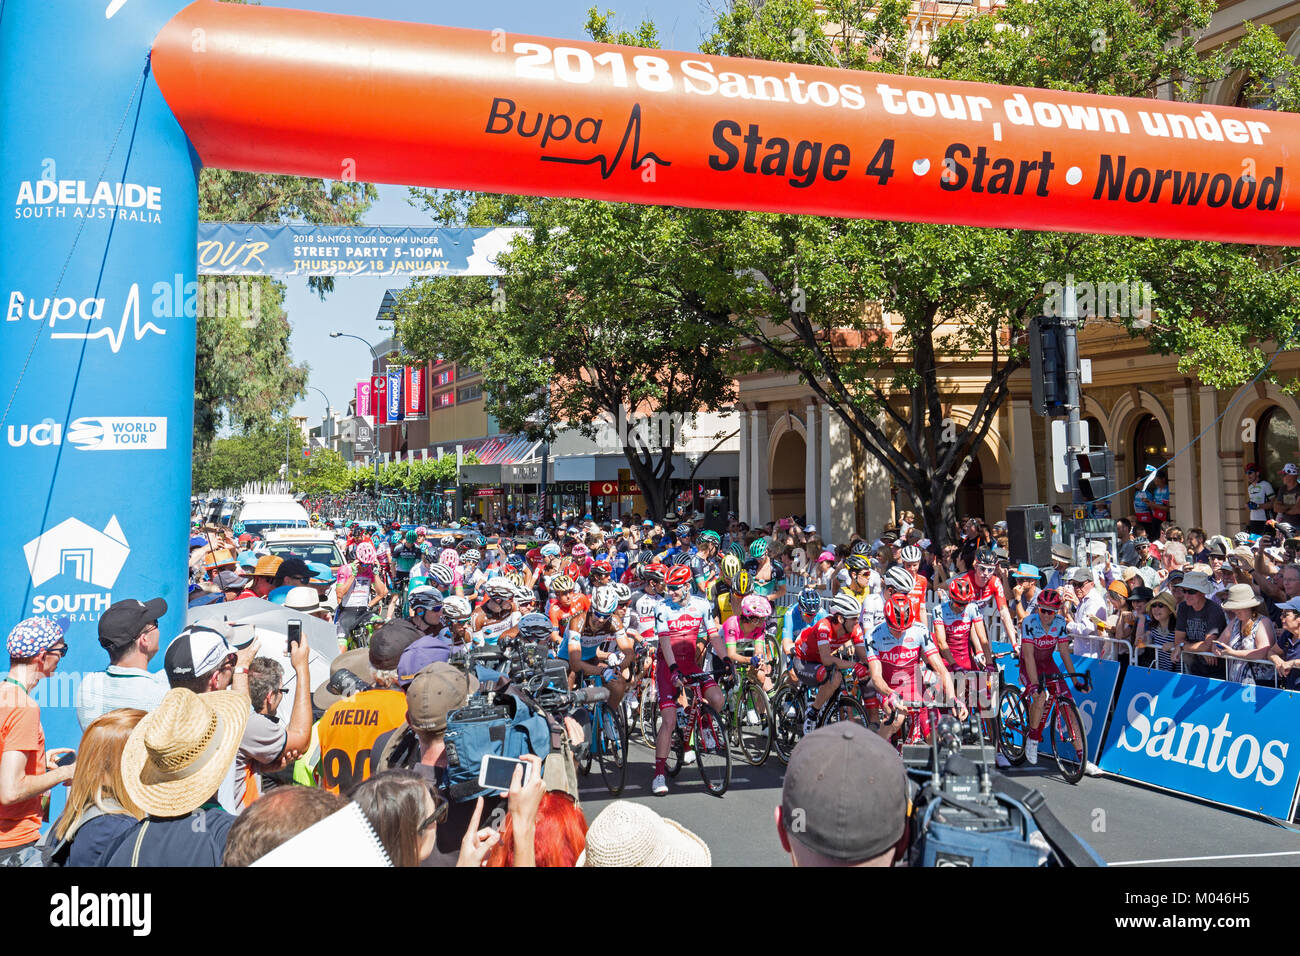 Adelaide Australia. 19th Jan, 2018. Riders preparing to set off on the start of stage 4 of the 2018 Tour Down Under - Stock Image